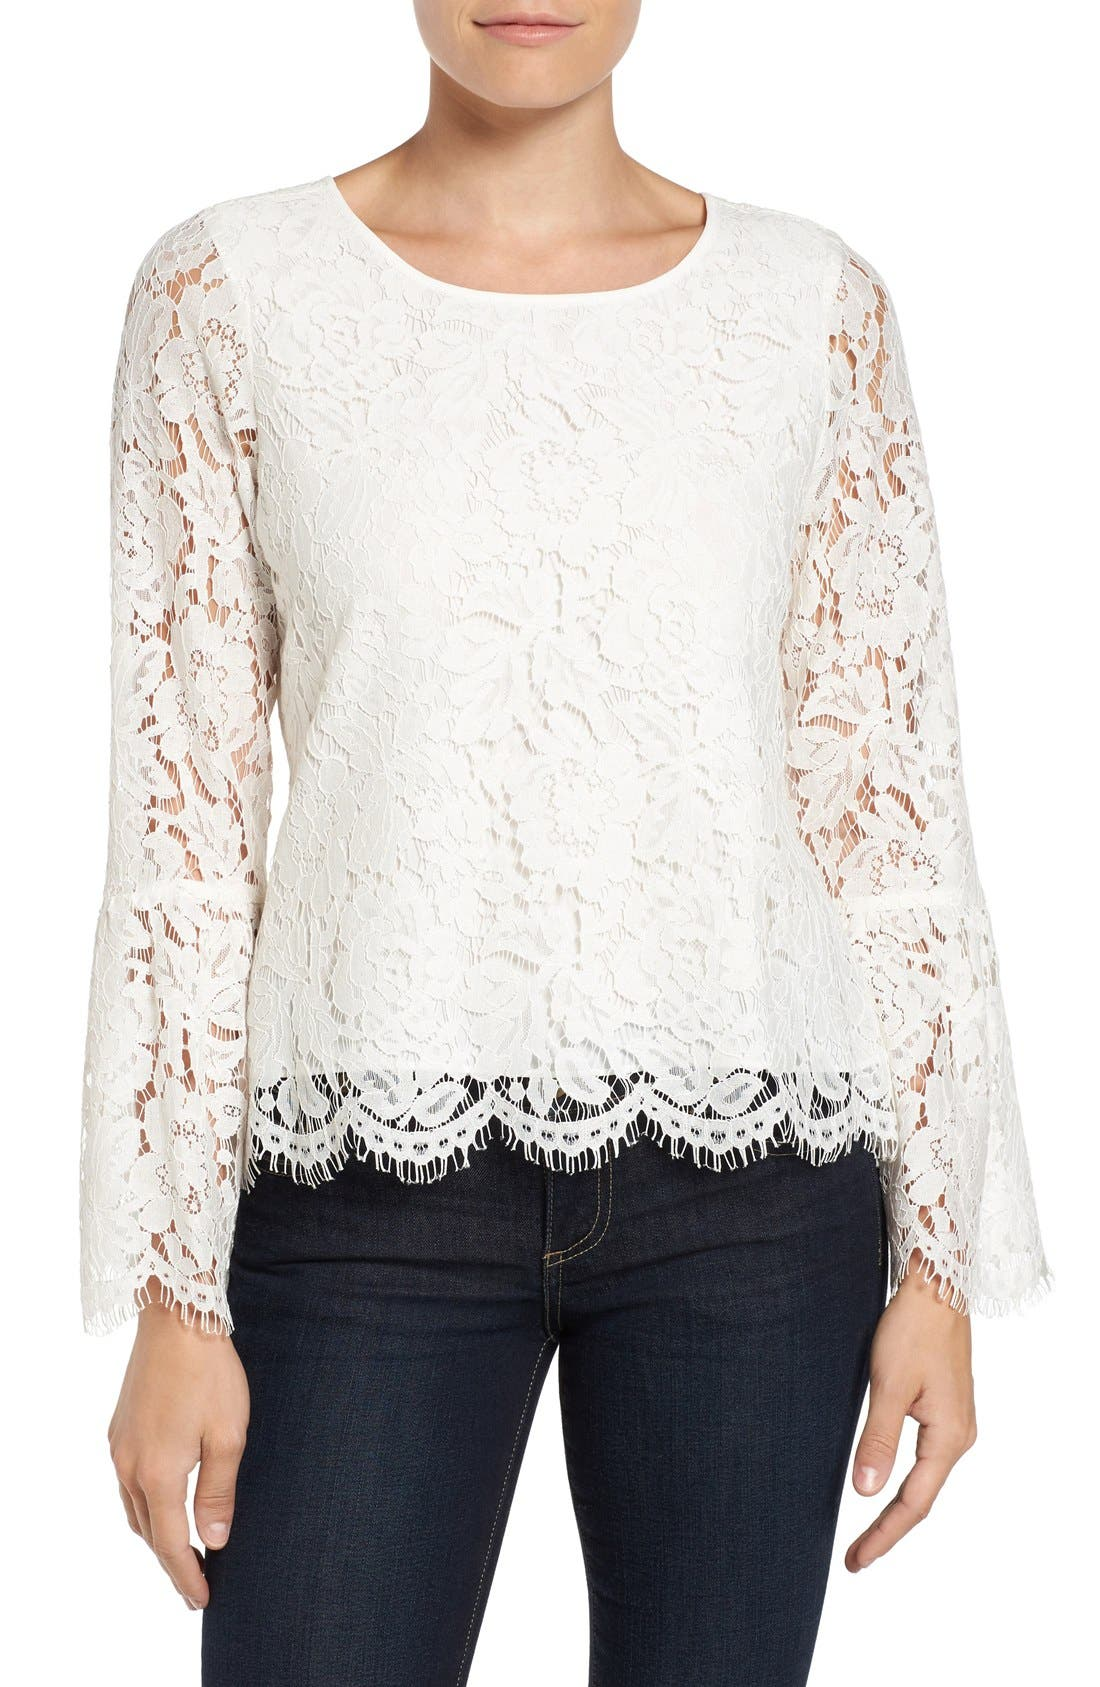 Main Image - Vince Camuto Lace Bell Sleeve Blouse (Regular & Petite)